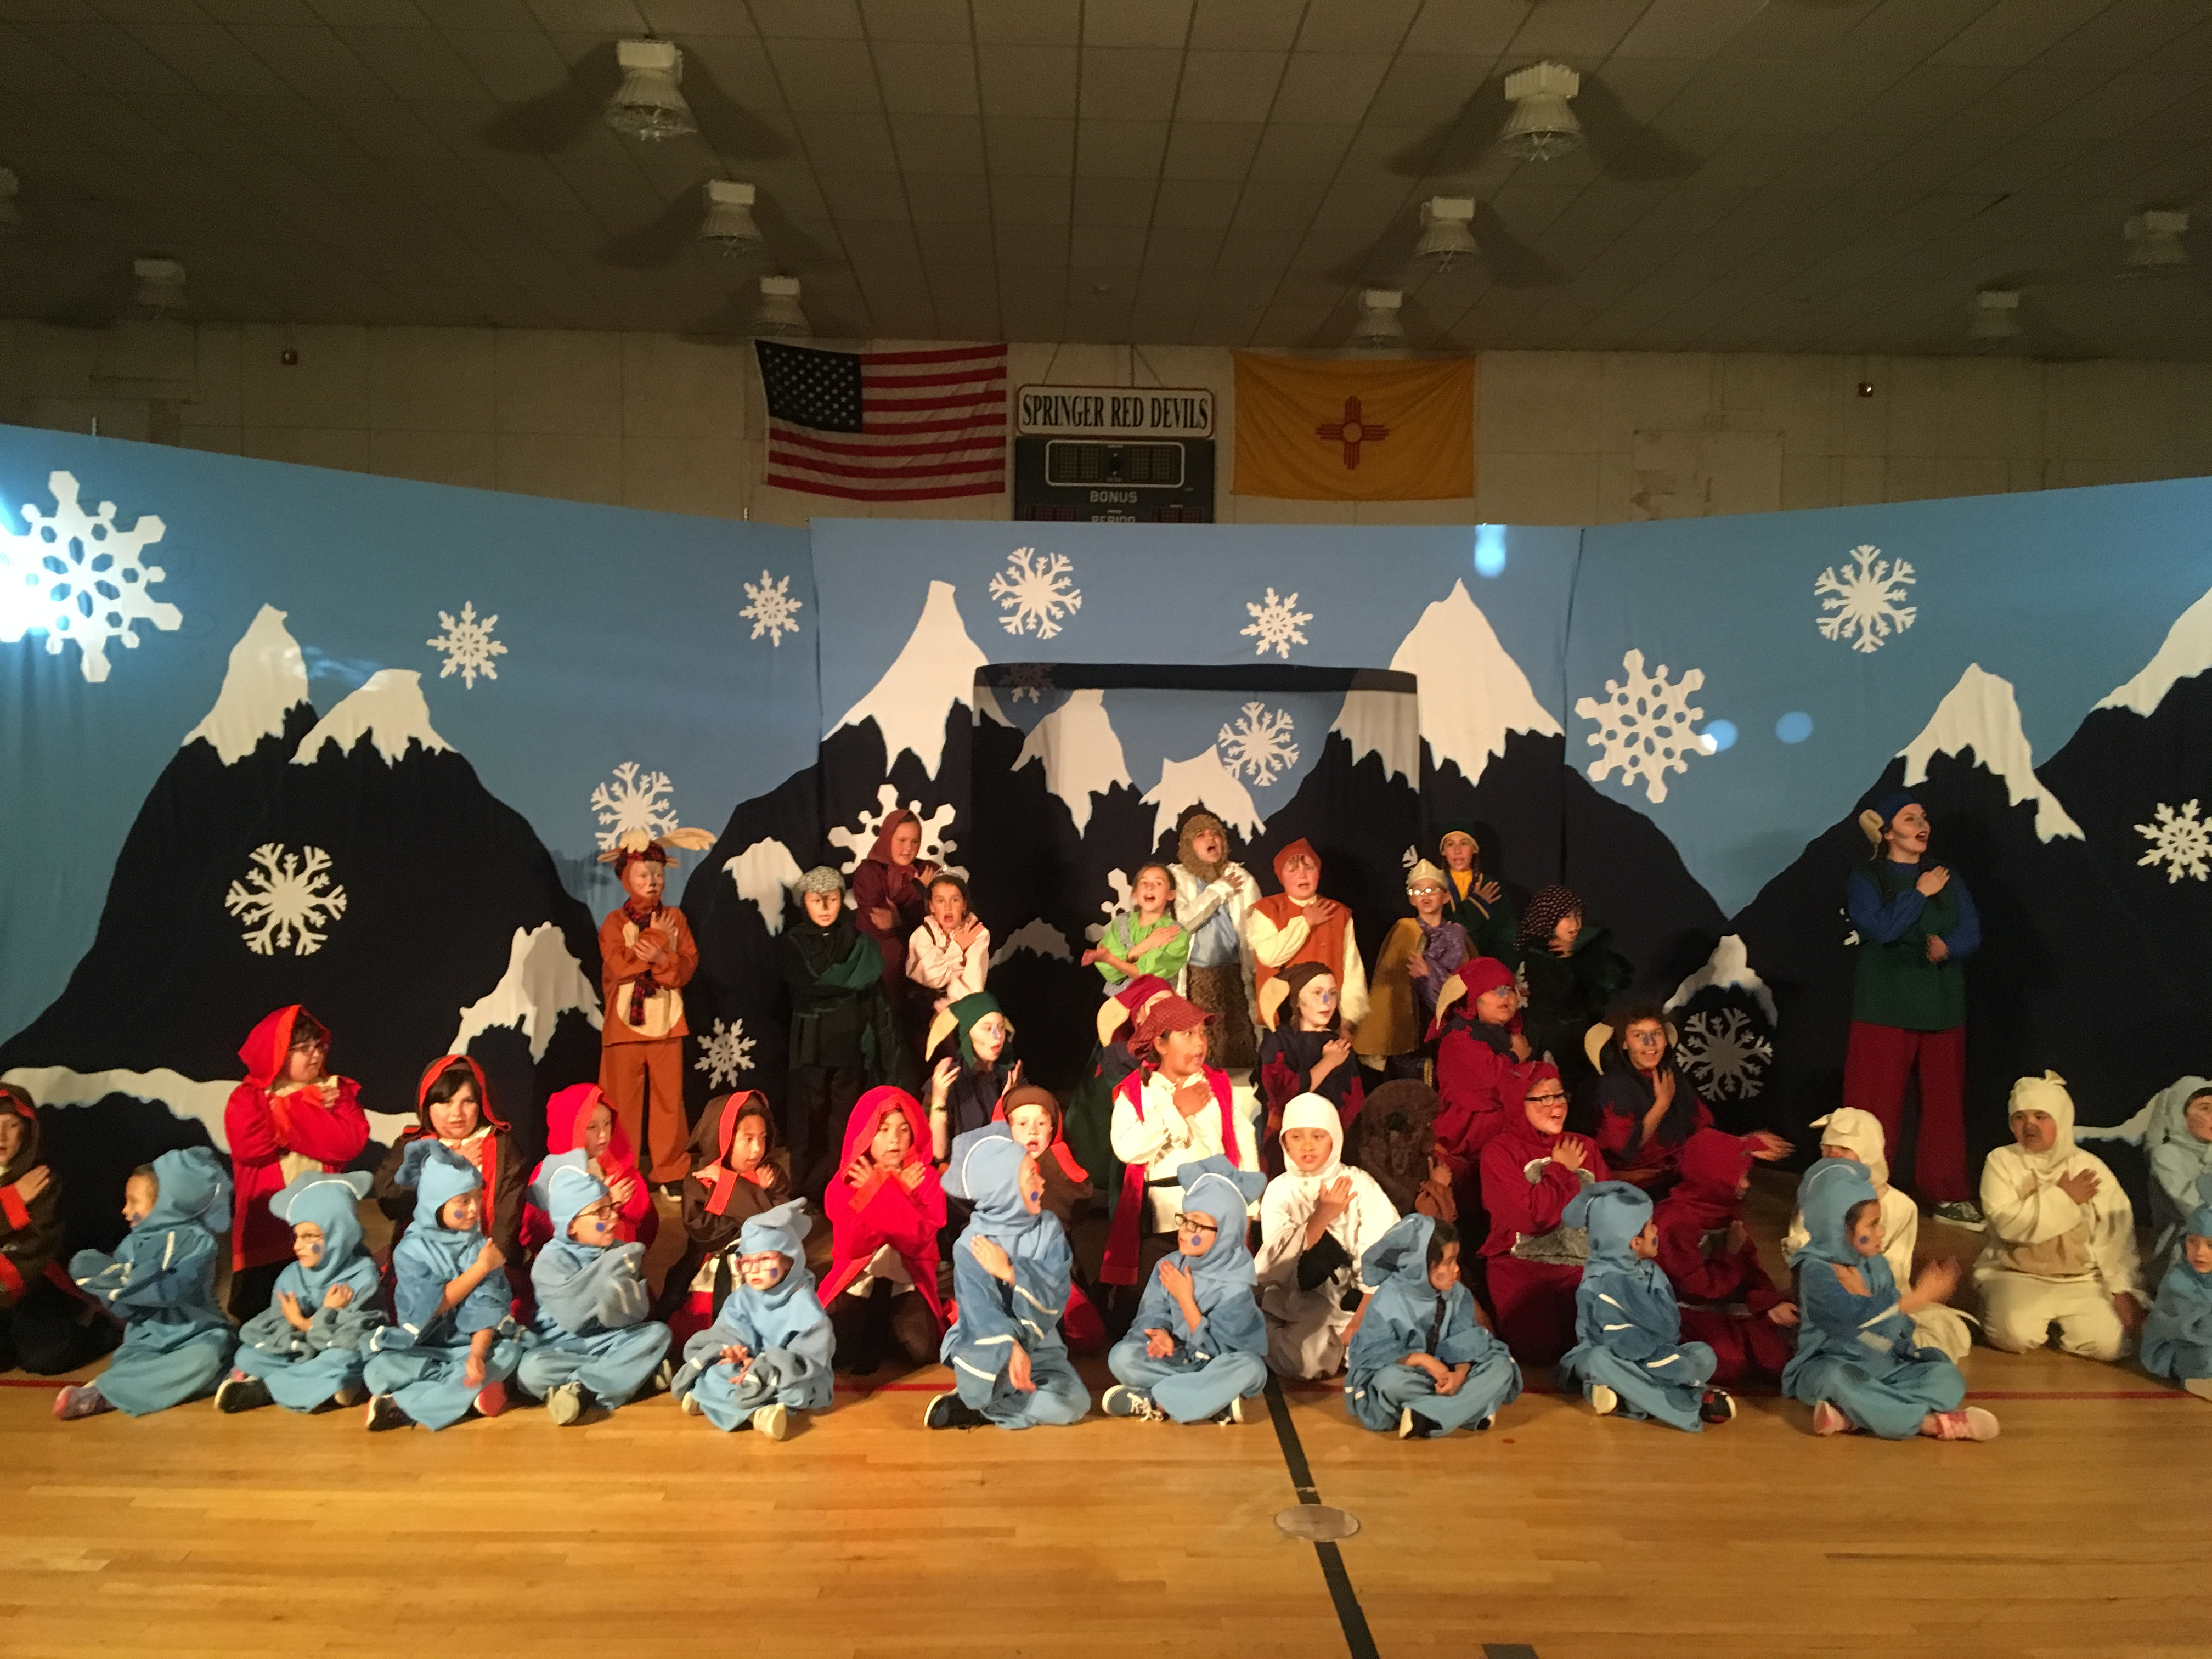 Missoula Children's Theatre performs The Snow Queen – The World Journal